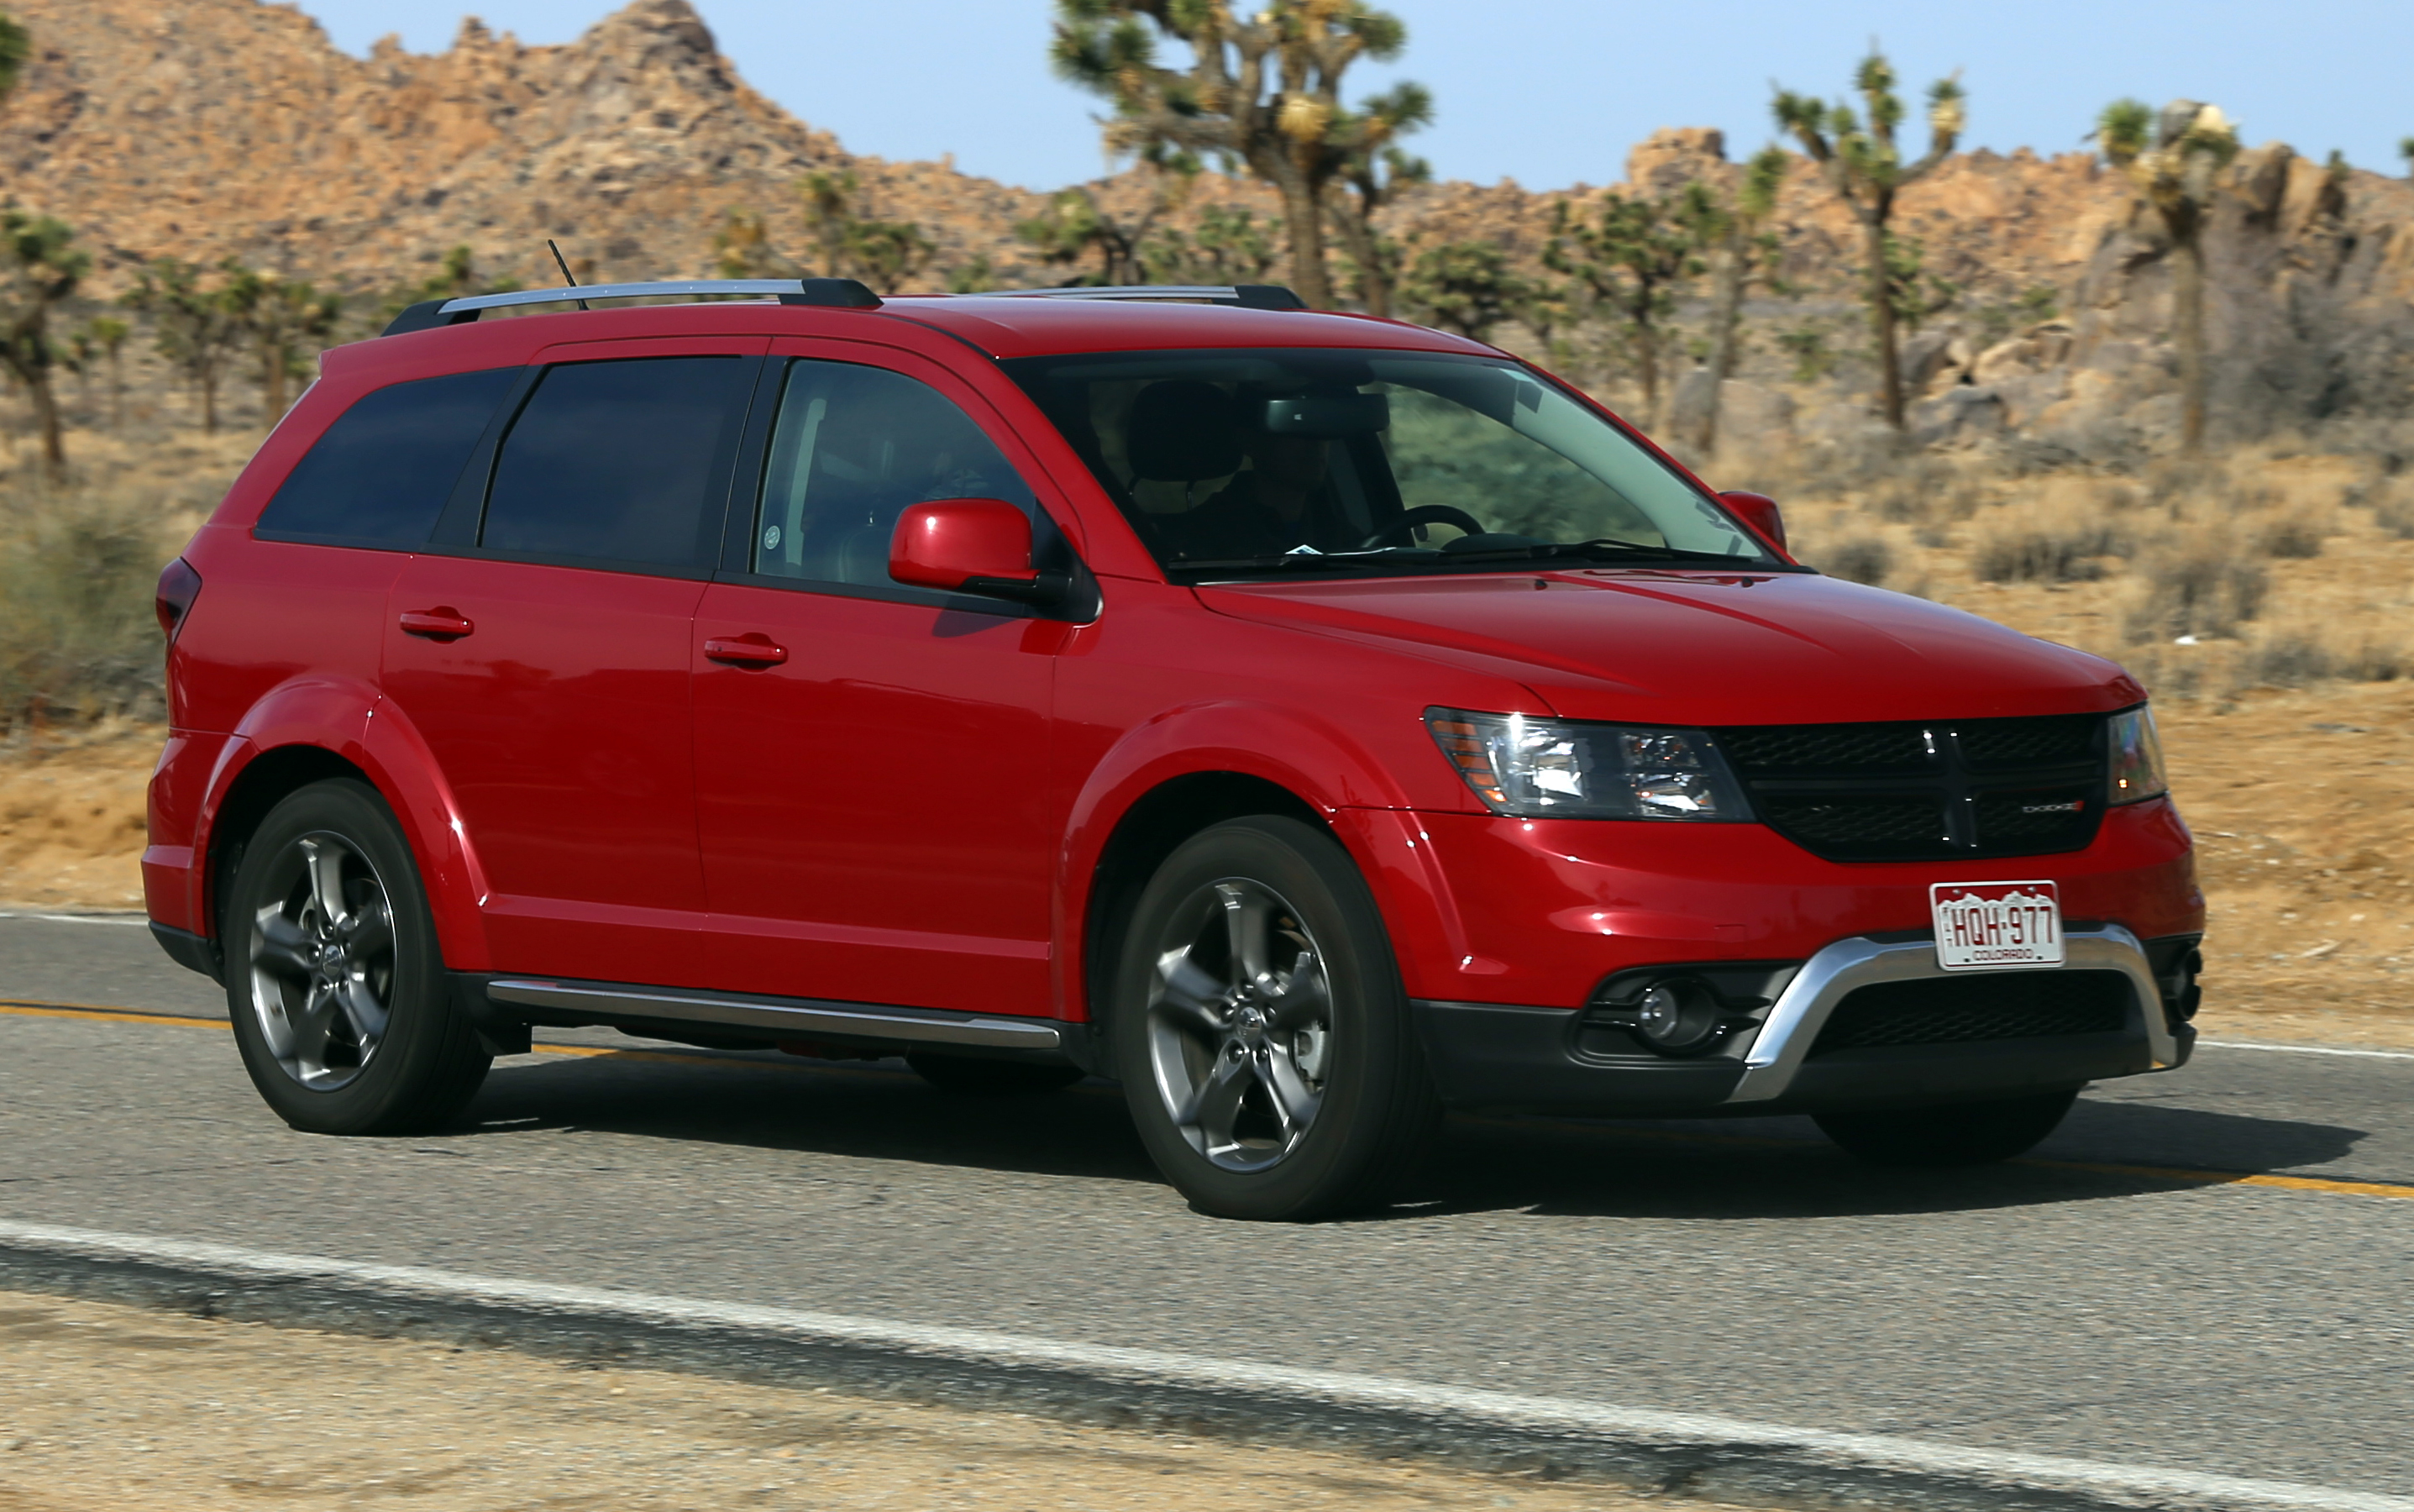 2012 Dodge Journey Tire Size >> Dodge Journey Wikipedia